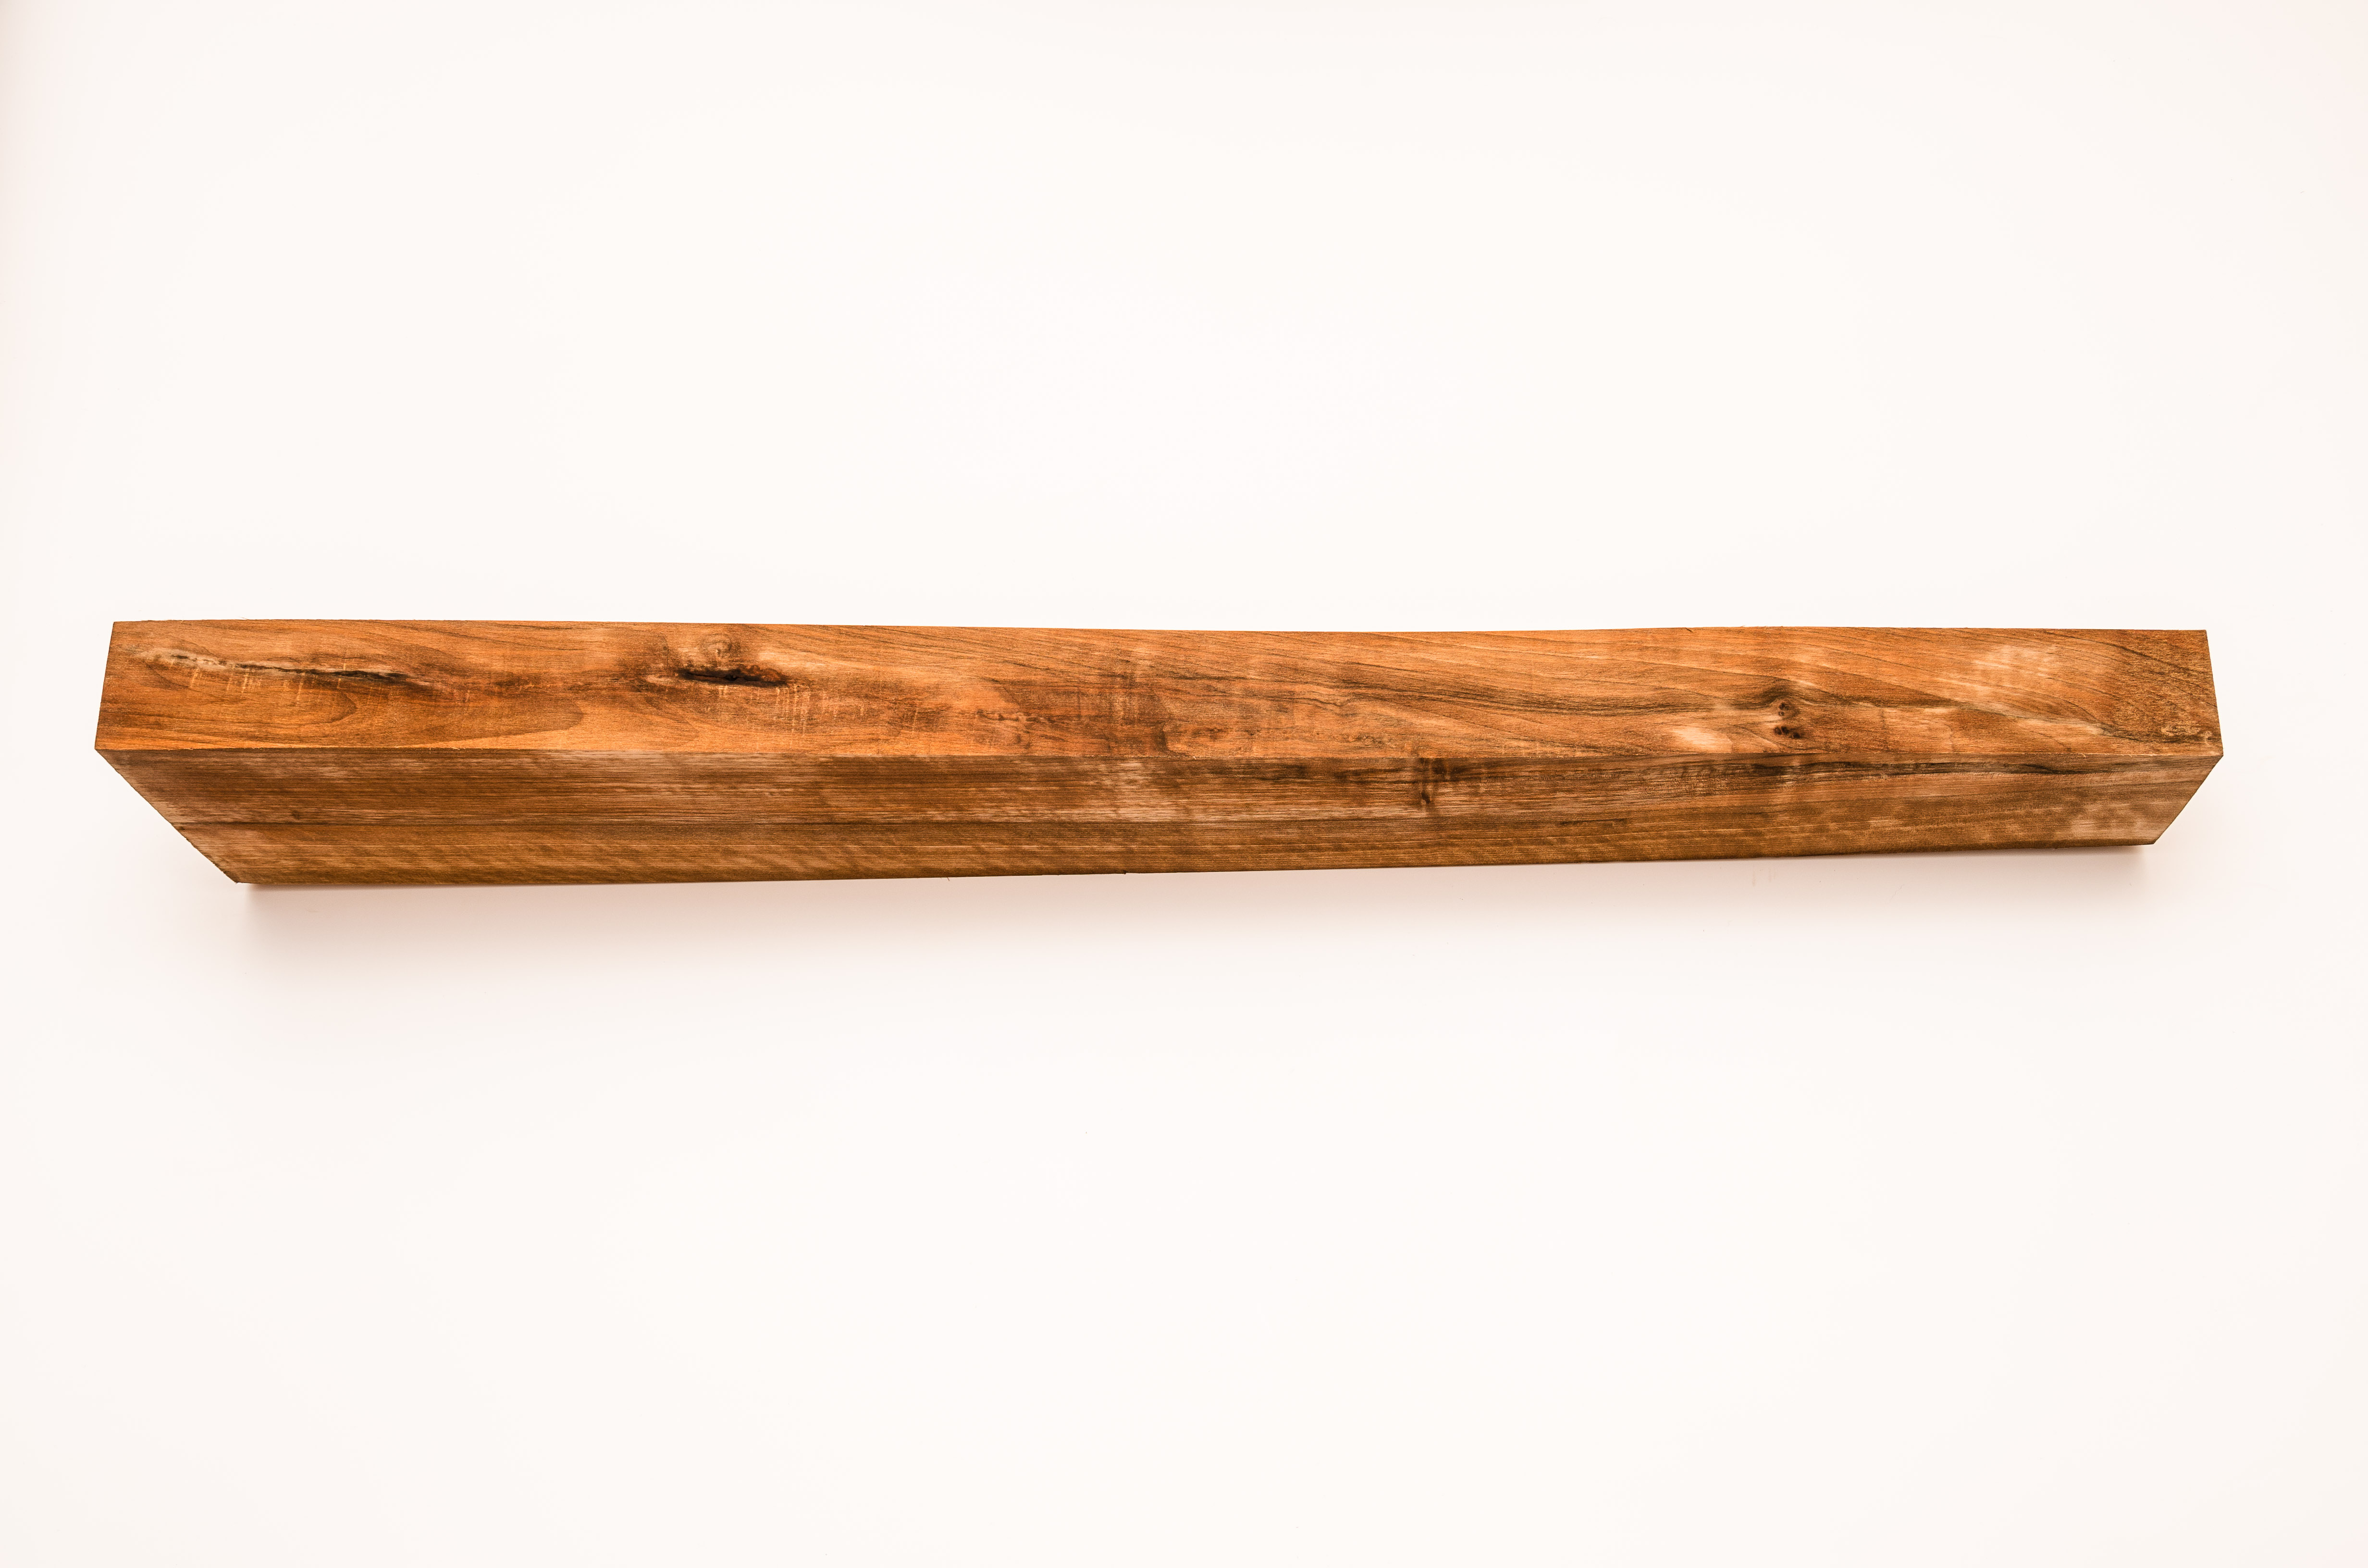 walnut_stock_blanks_for_guns_and_rifles-1326